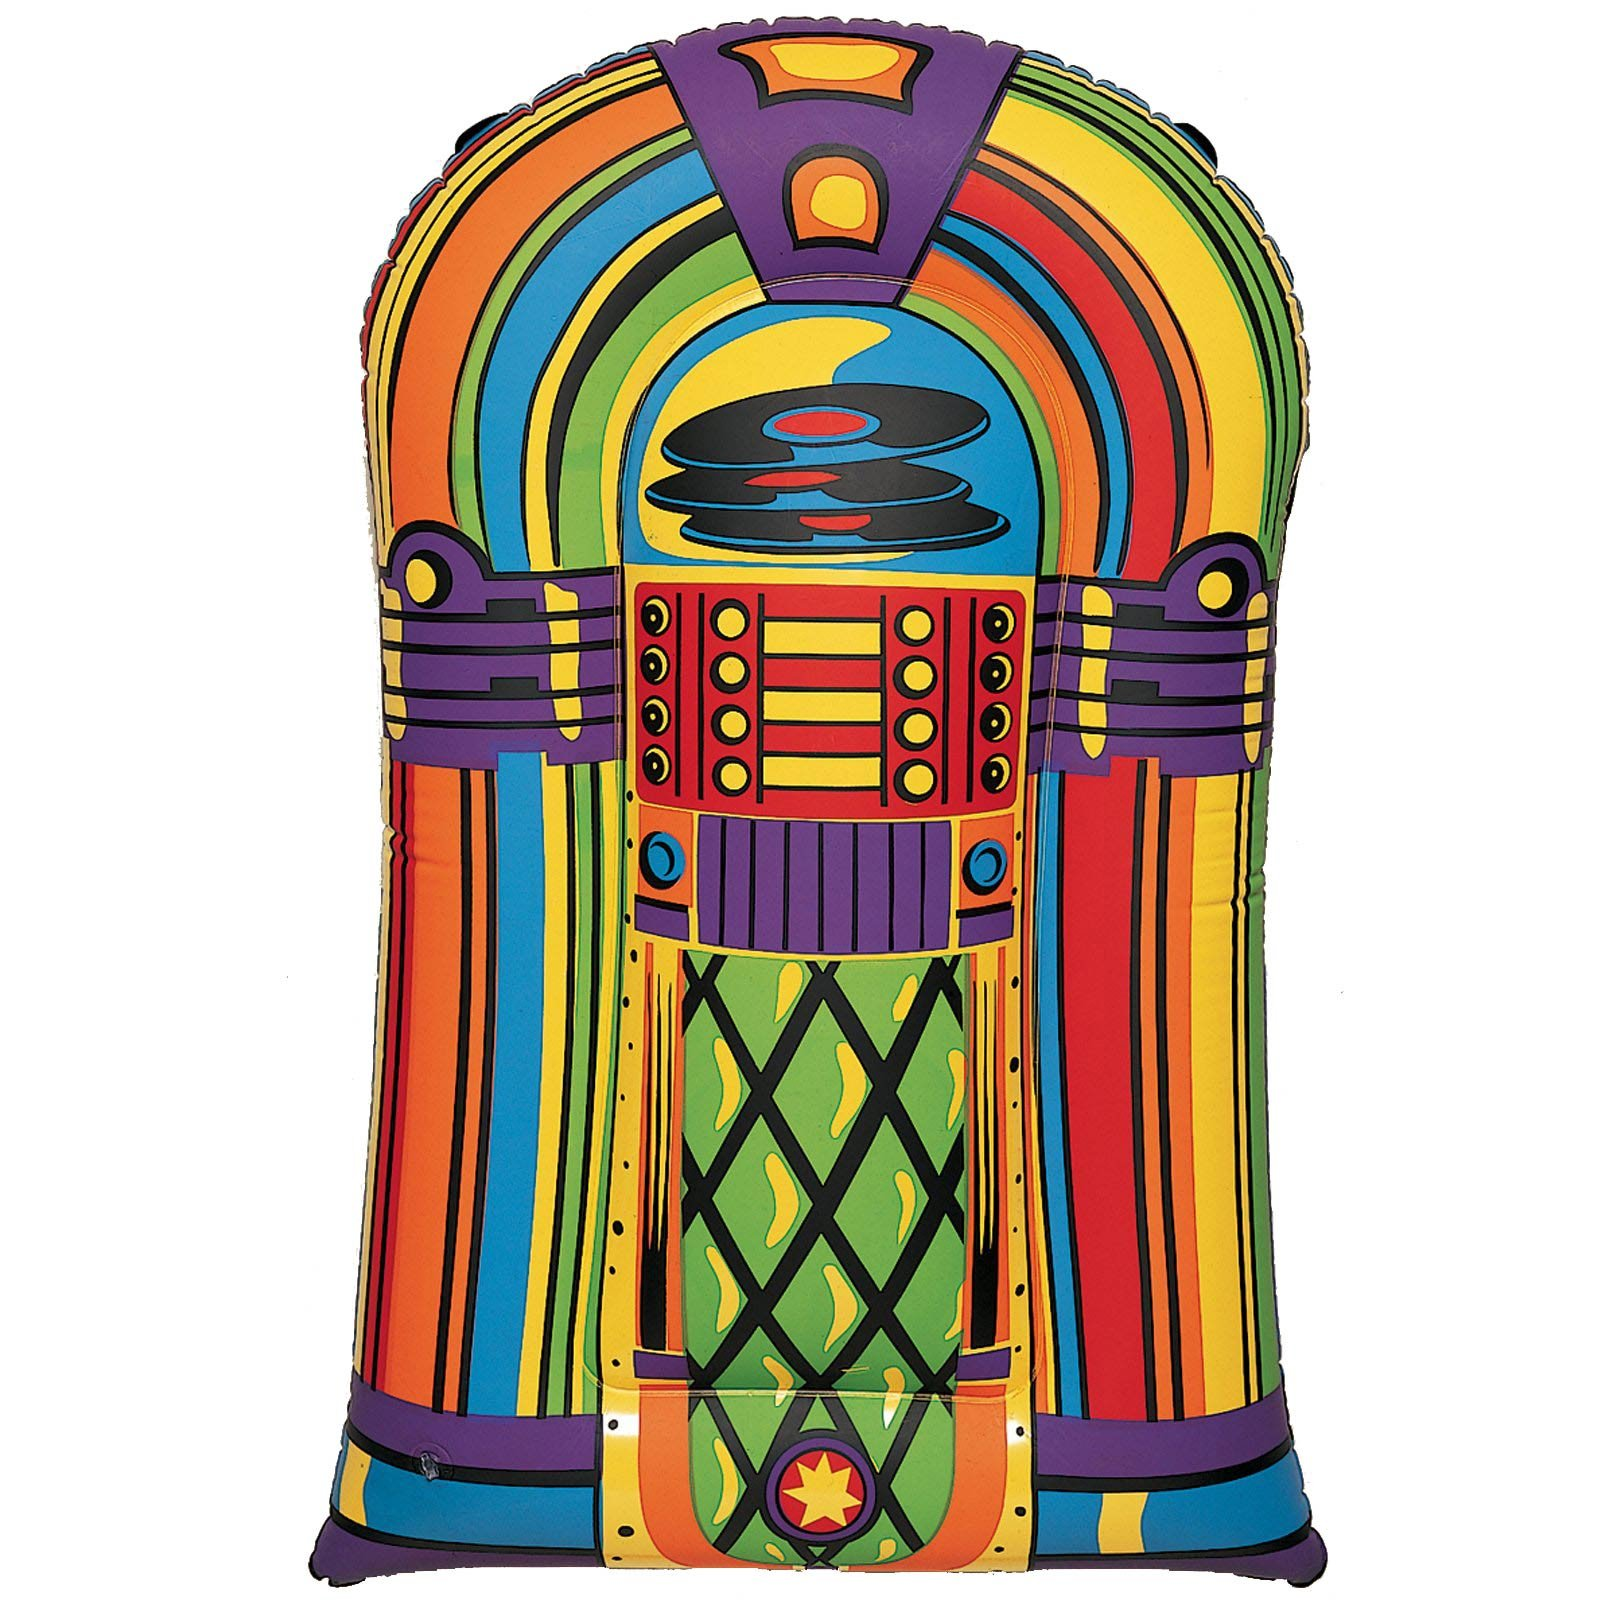 Jukebox Clipart | Free download best Jukebox Clipart on ClipArtMag com